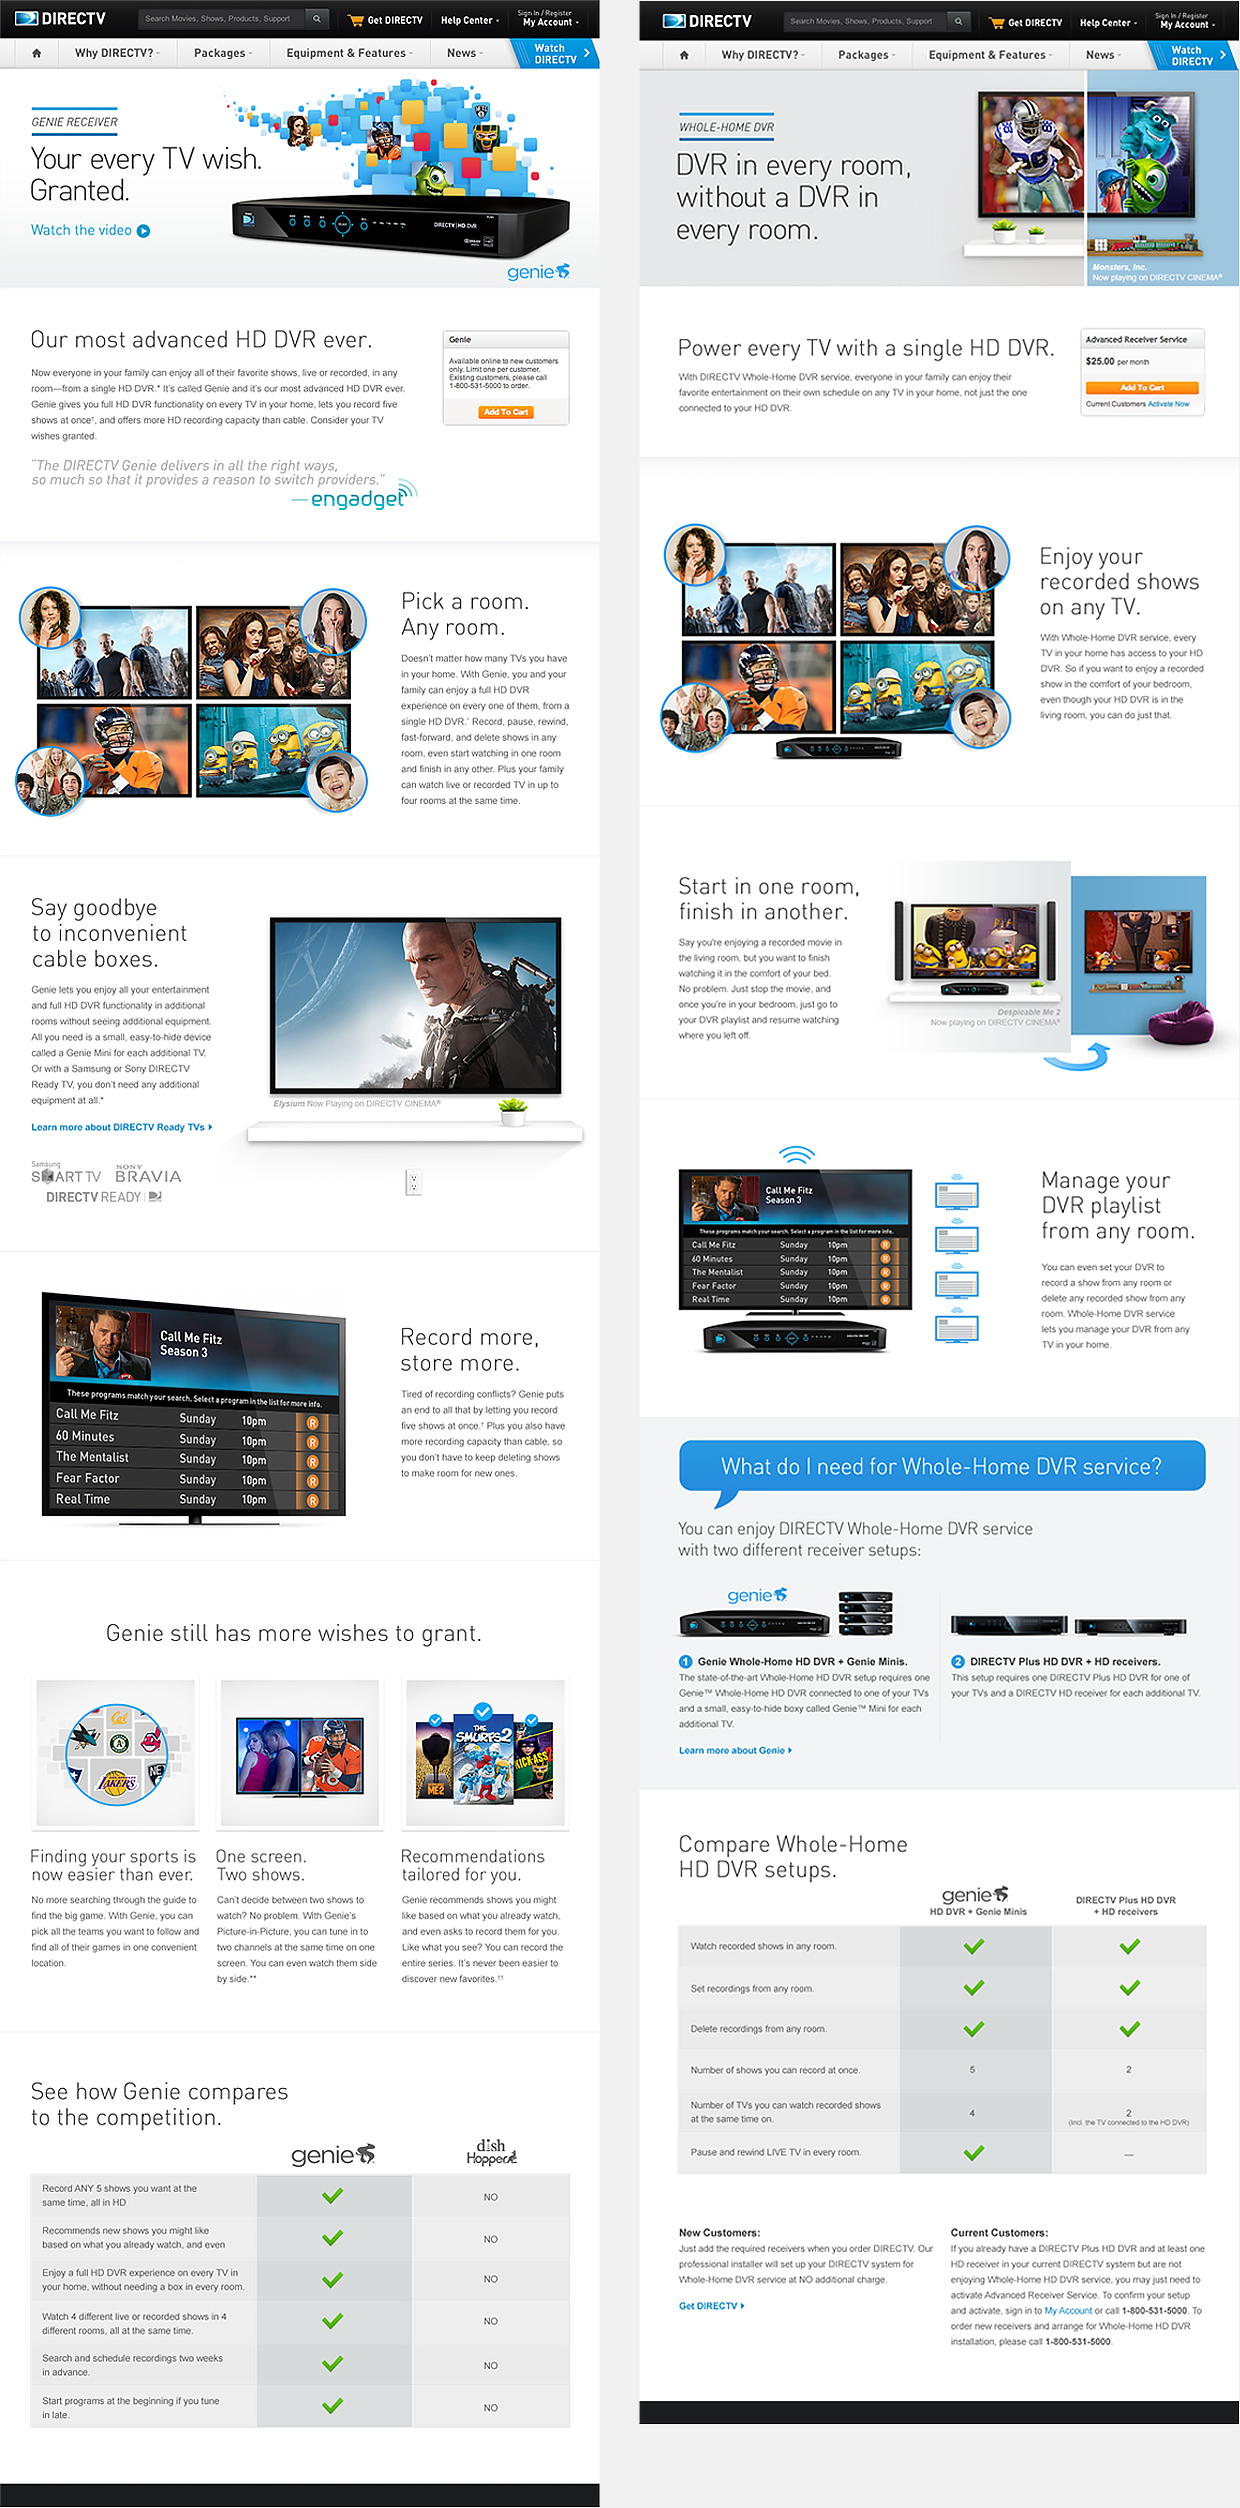 dtv_pages_3